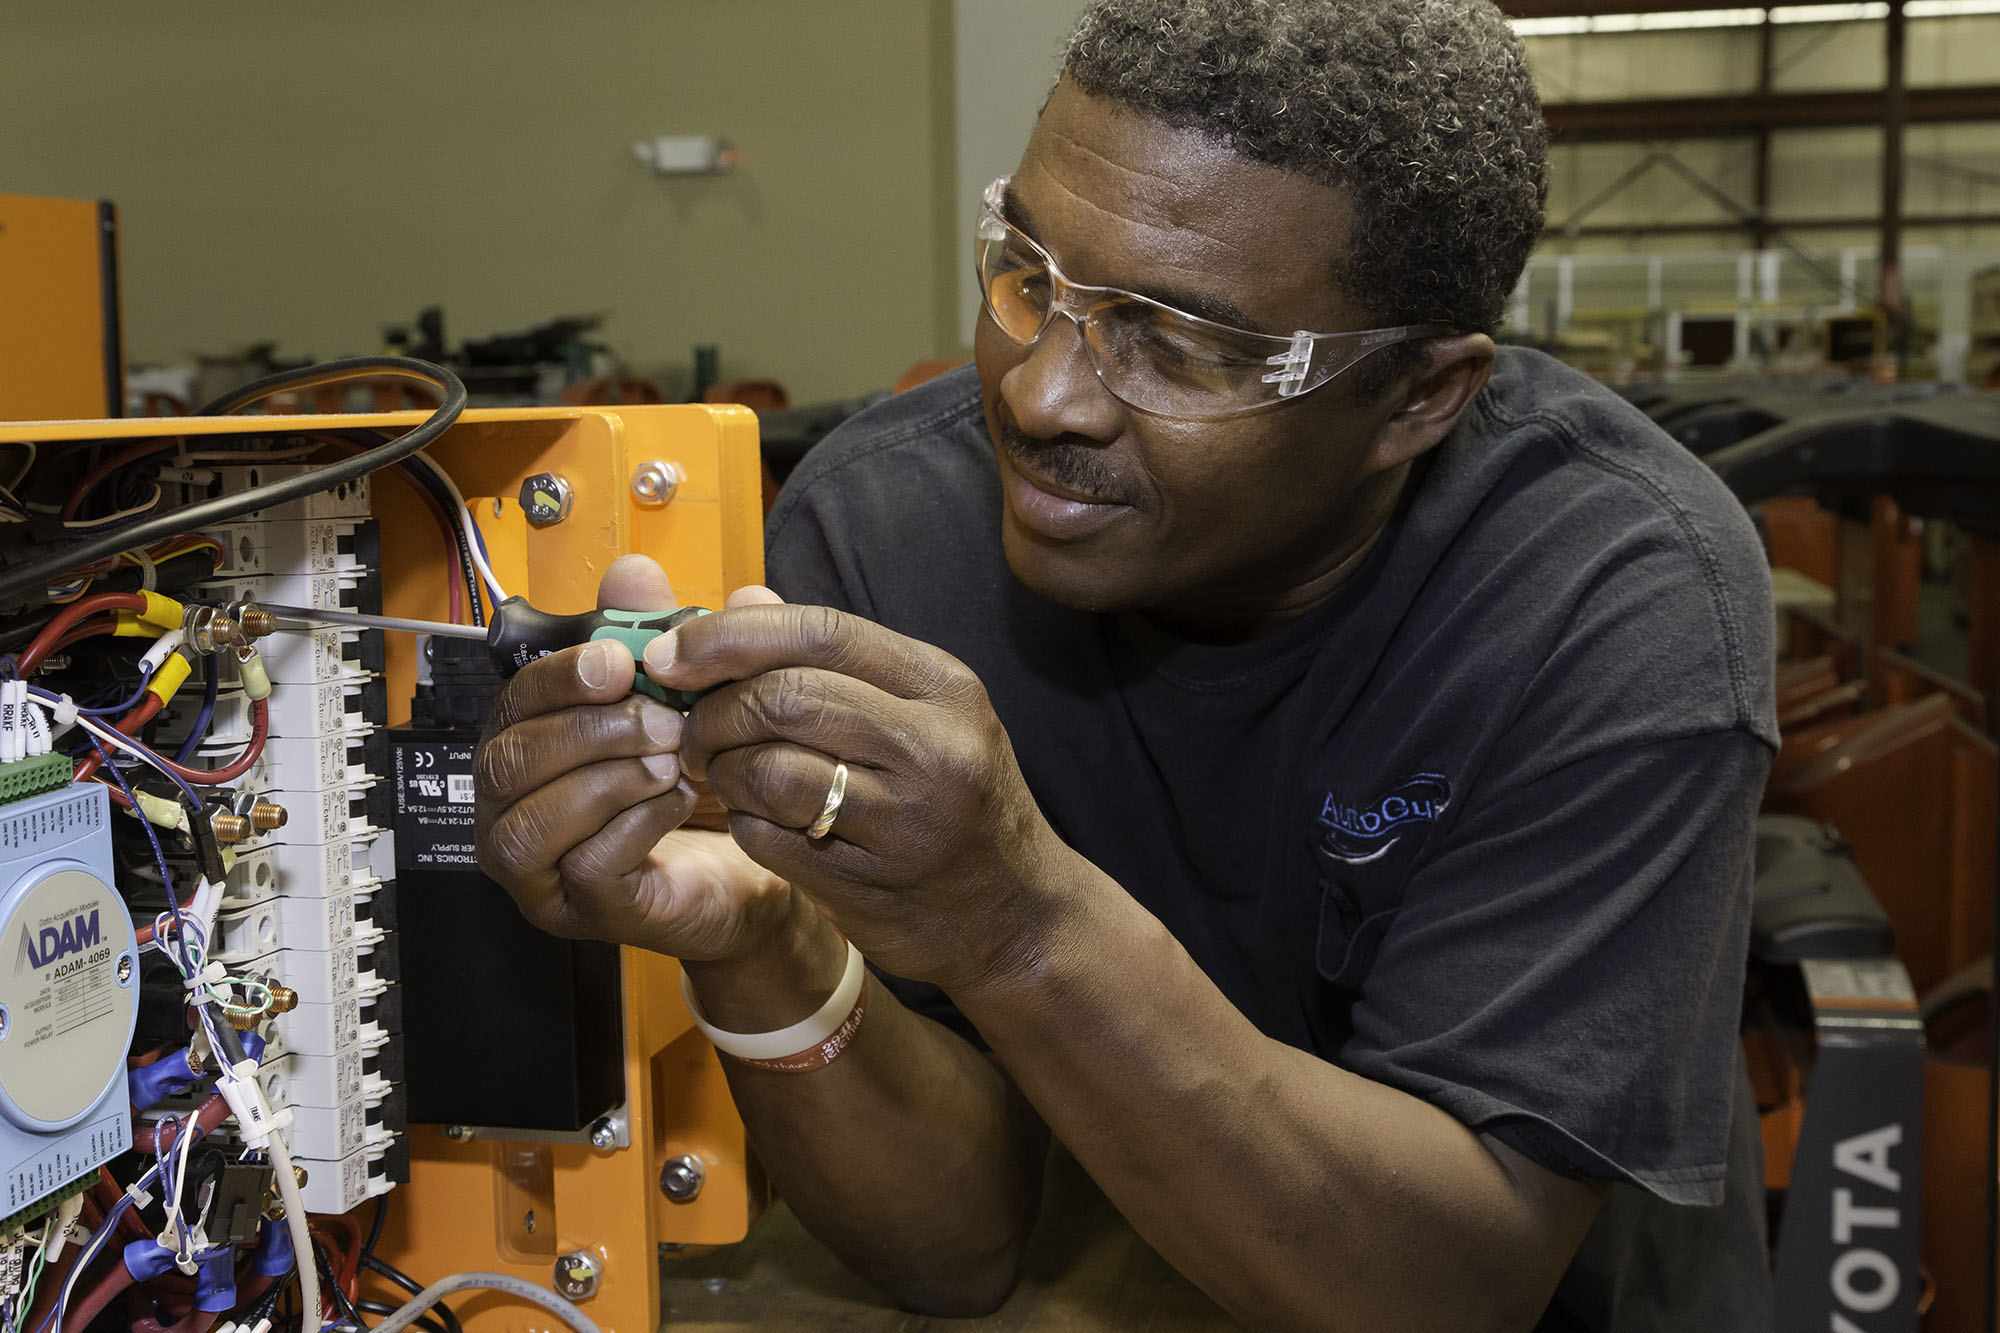 detail of man working in robotics fabrication